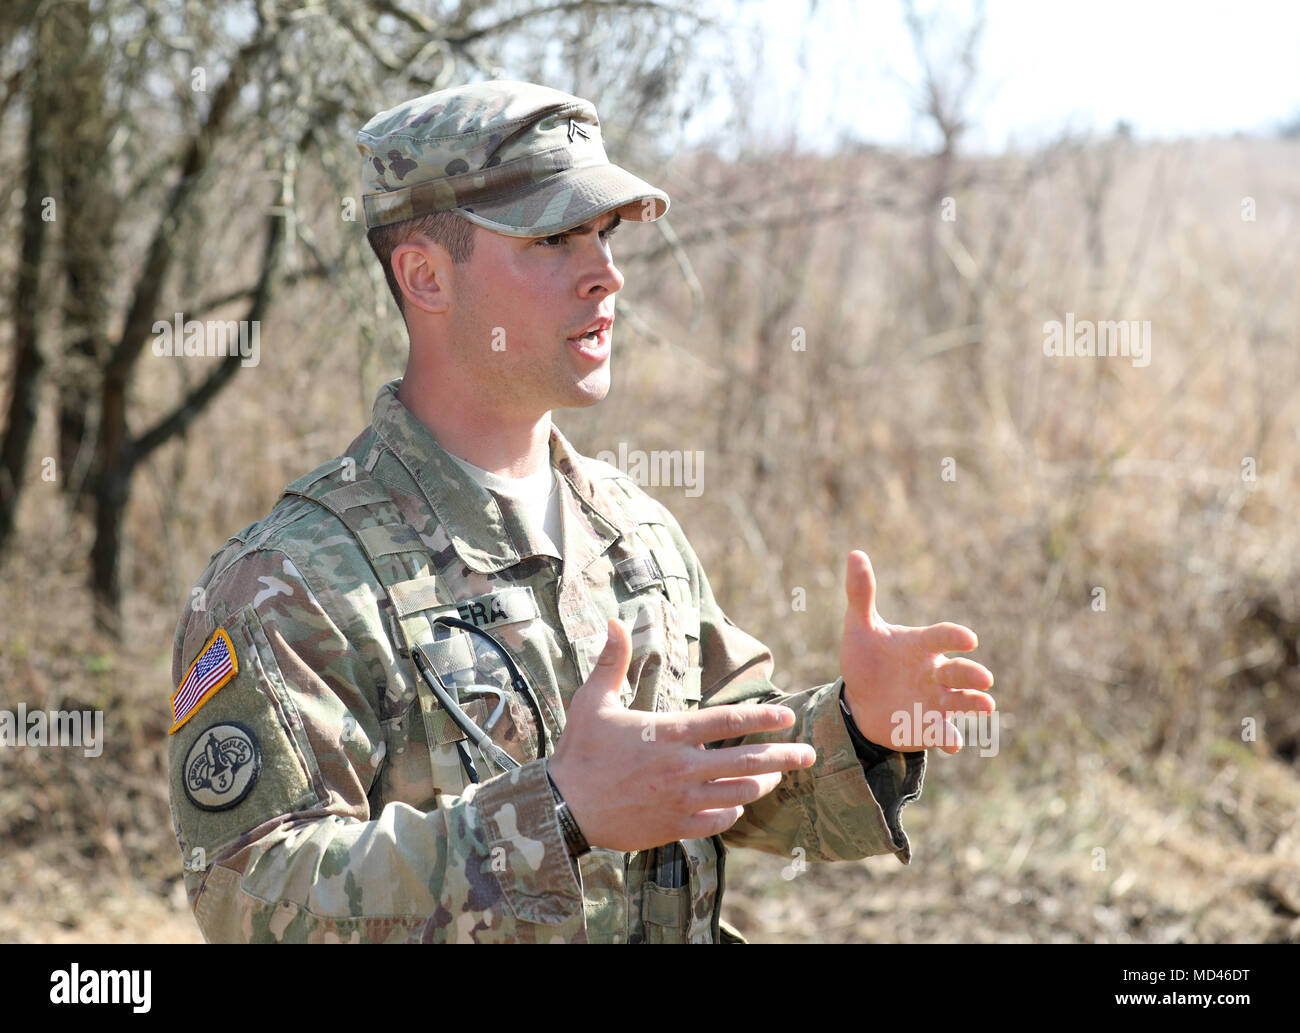 A US Army Soldier With The 78th Training Division Instructs Soldiers In Squad Tactics During Combat Support Exercise CSTX 78 18 03 At Fort